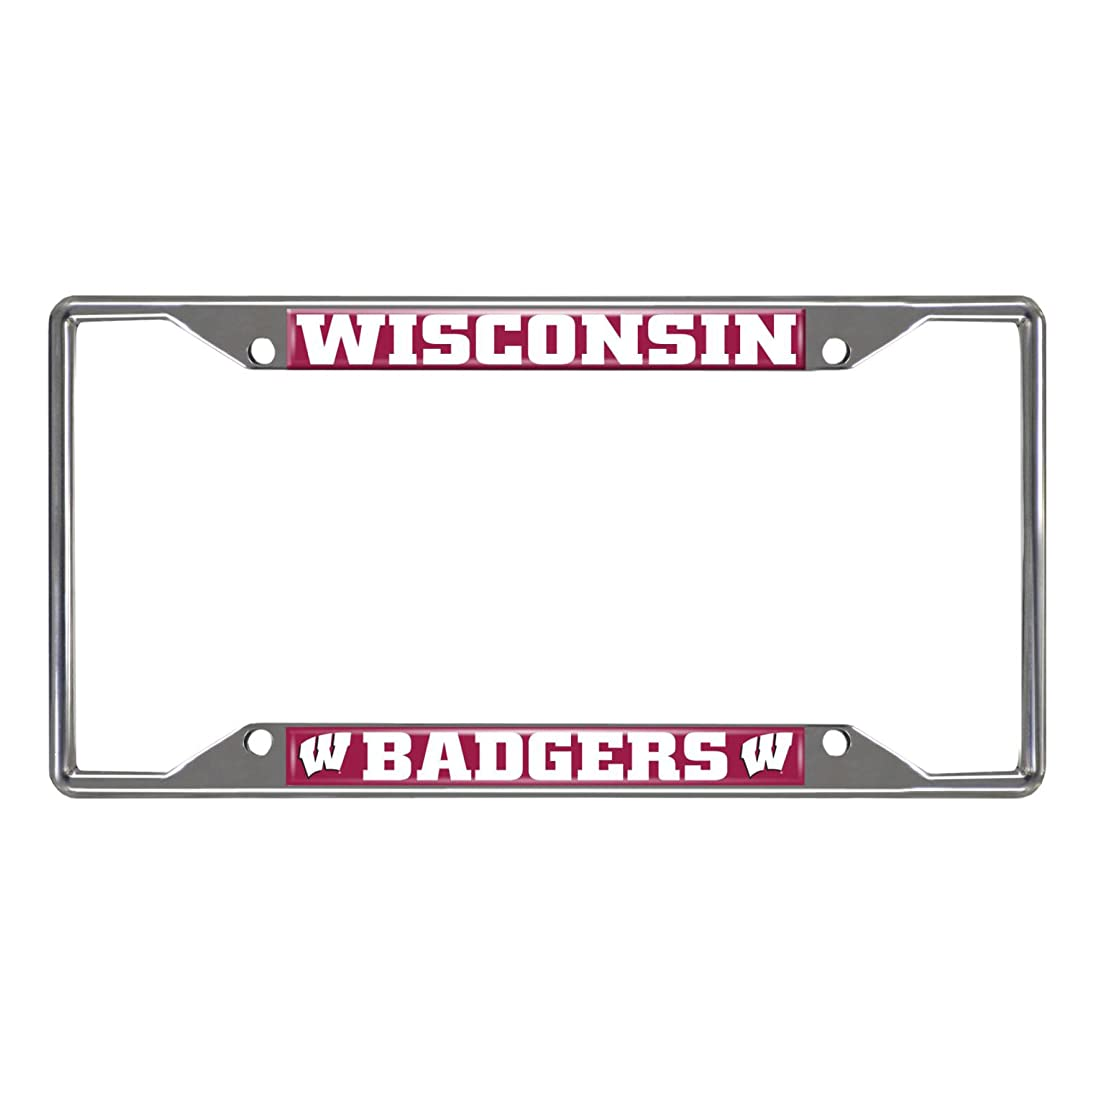 FANMATS NCAA University of Wisconsin Badgers Chrome License Plate Frame meob159029516699